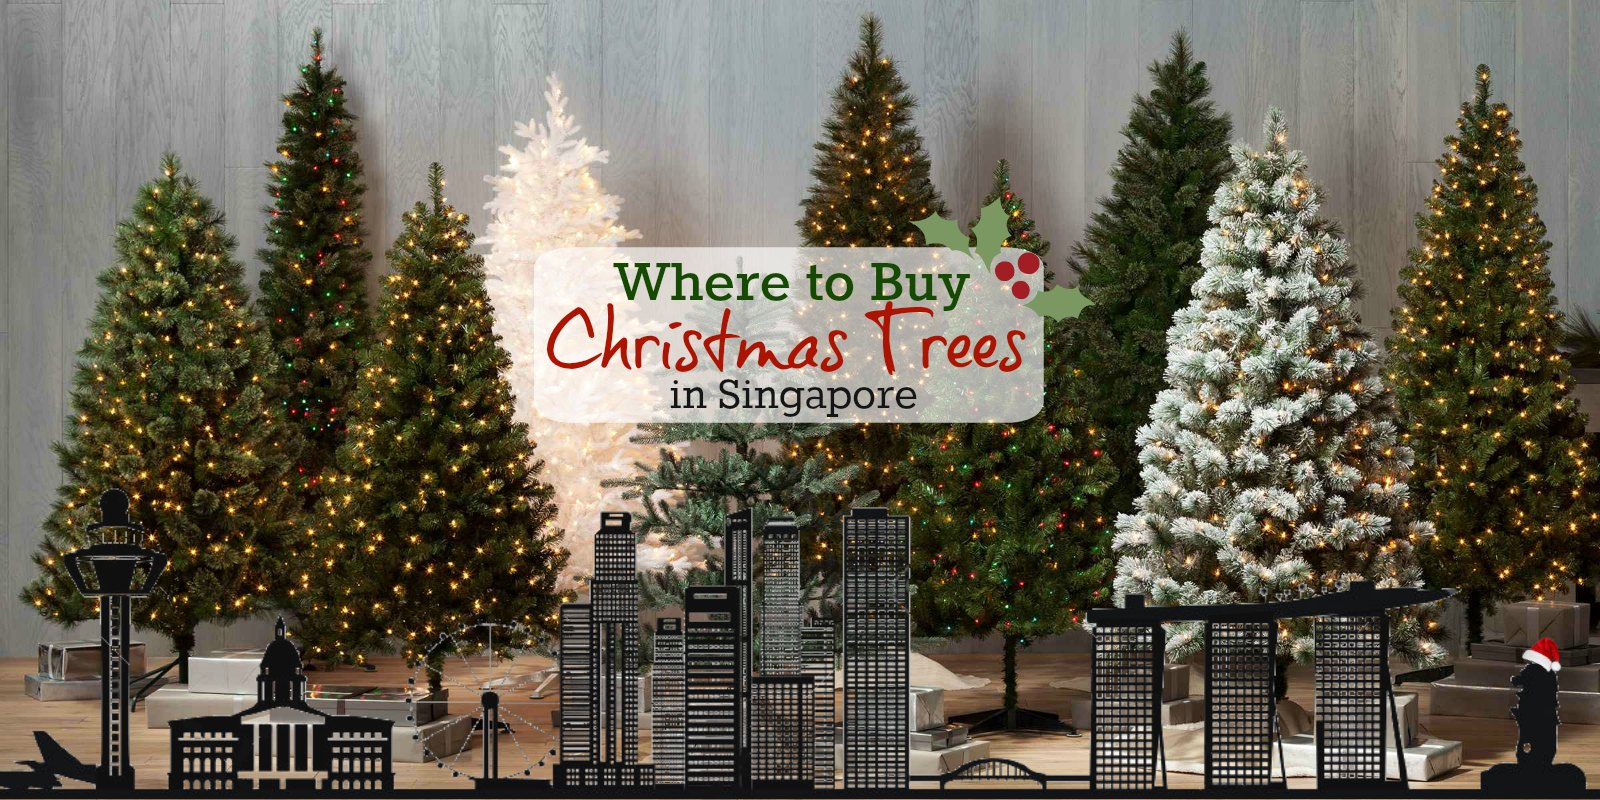 Where to Buy Christmas Trees & Decorations in Singapore